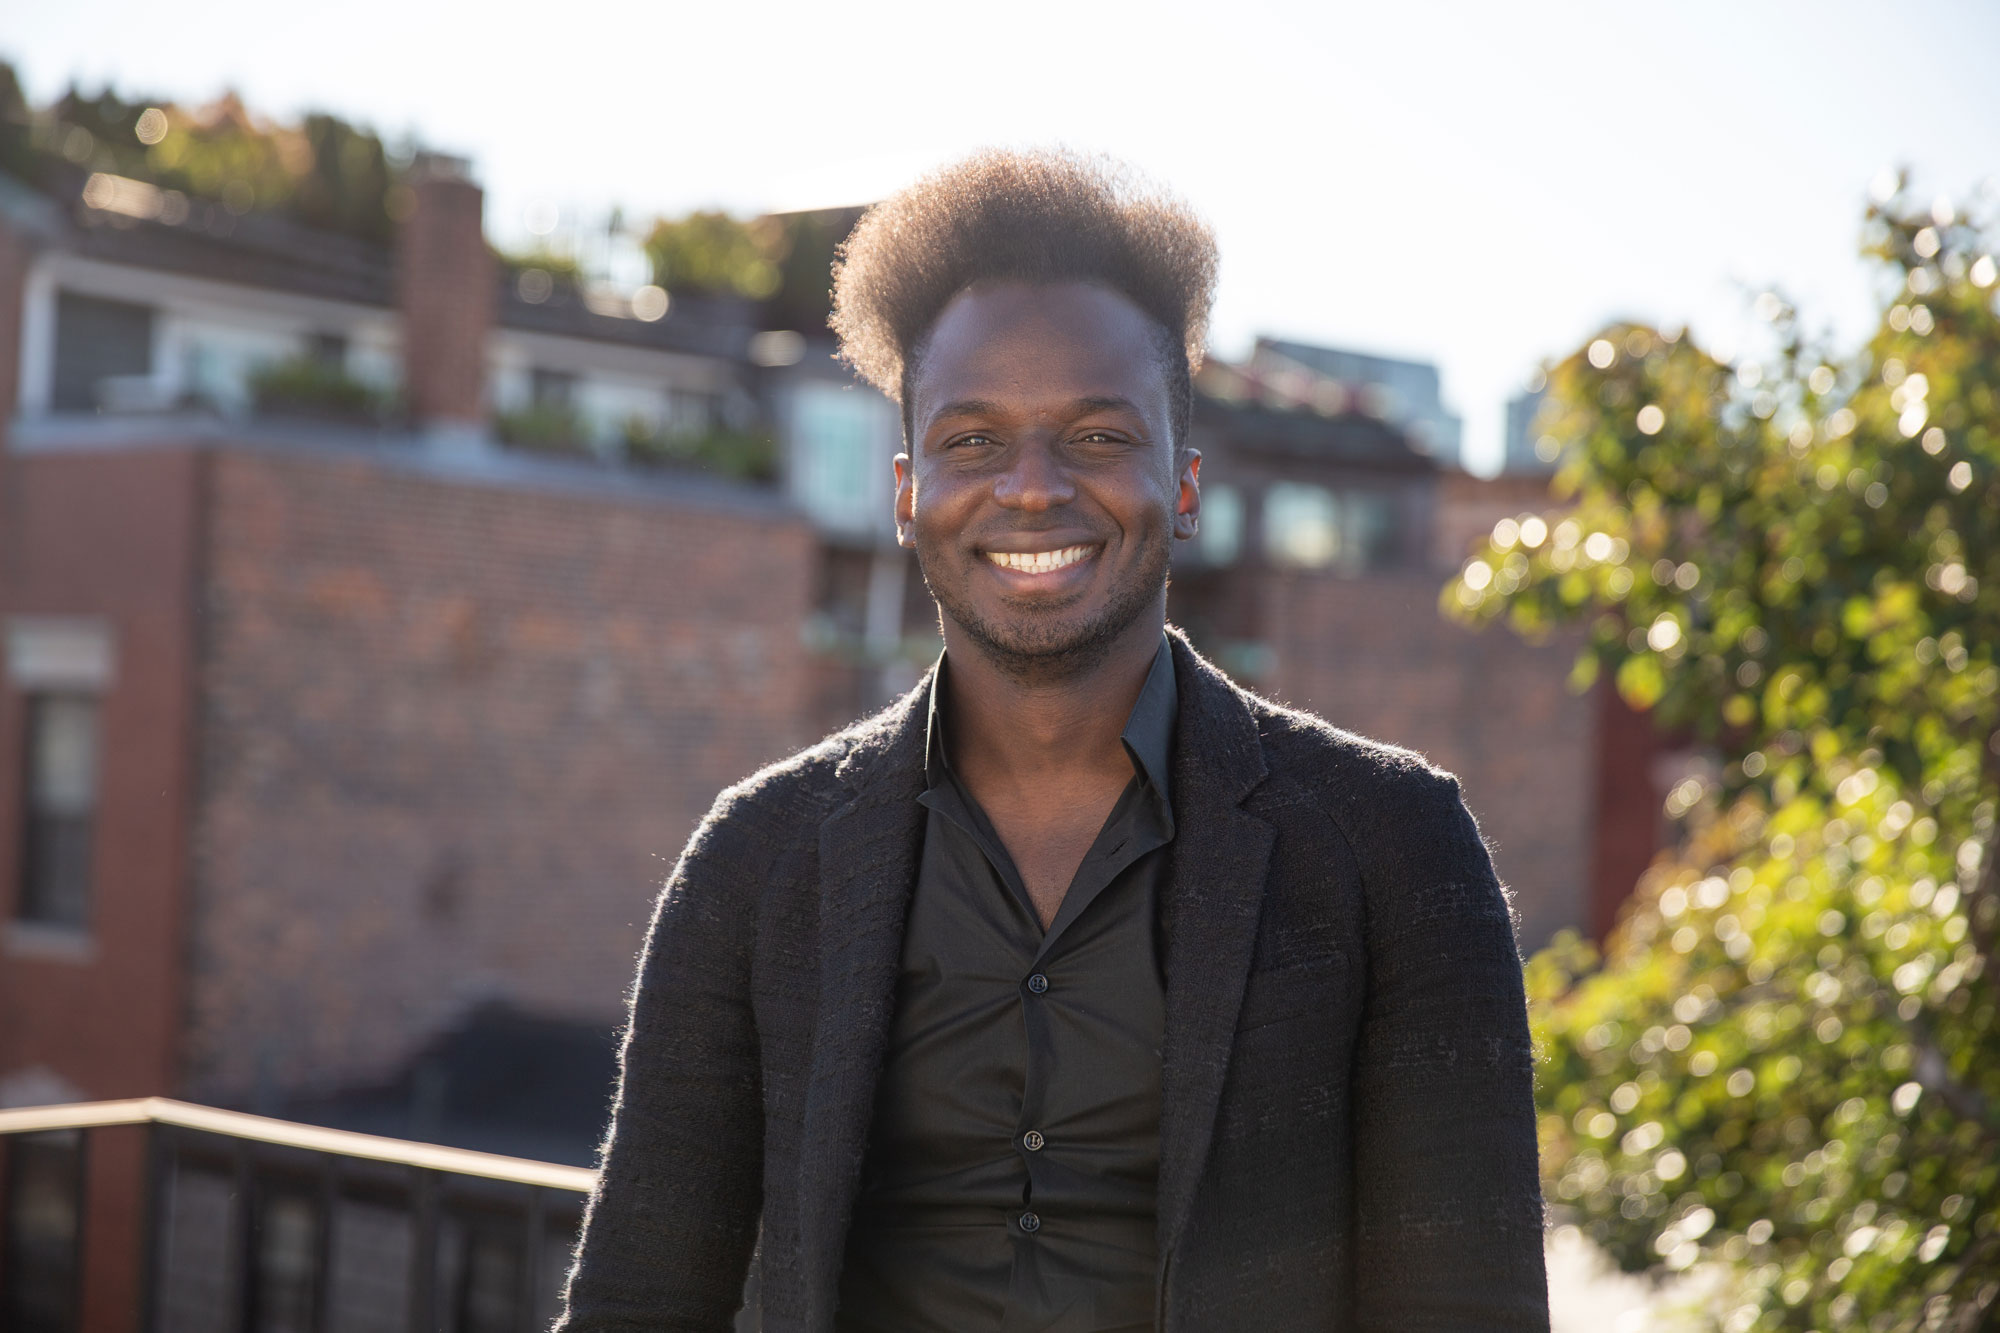 Ibrahim Cissé wearing a black blazer and shirt, smiles standing on a rooftop.